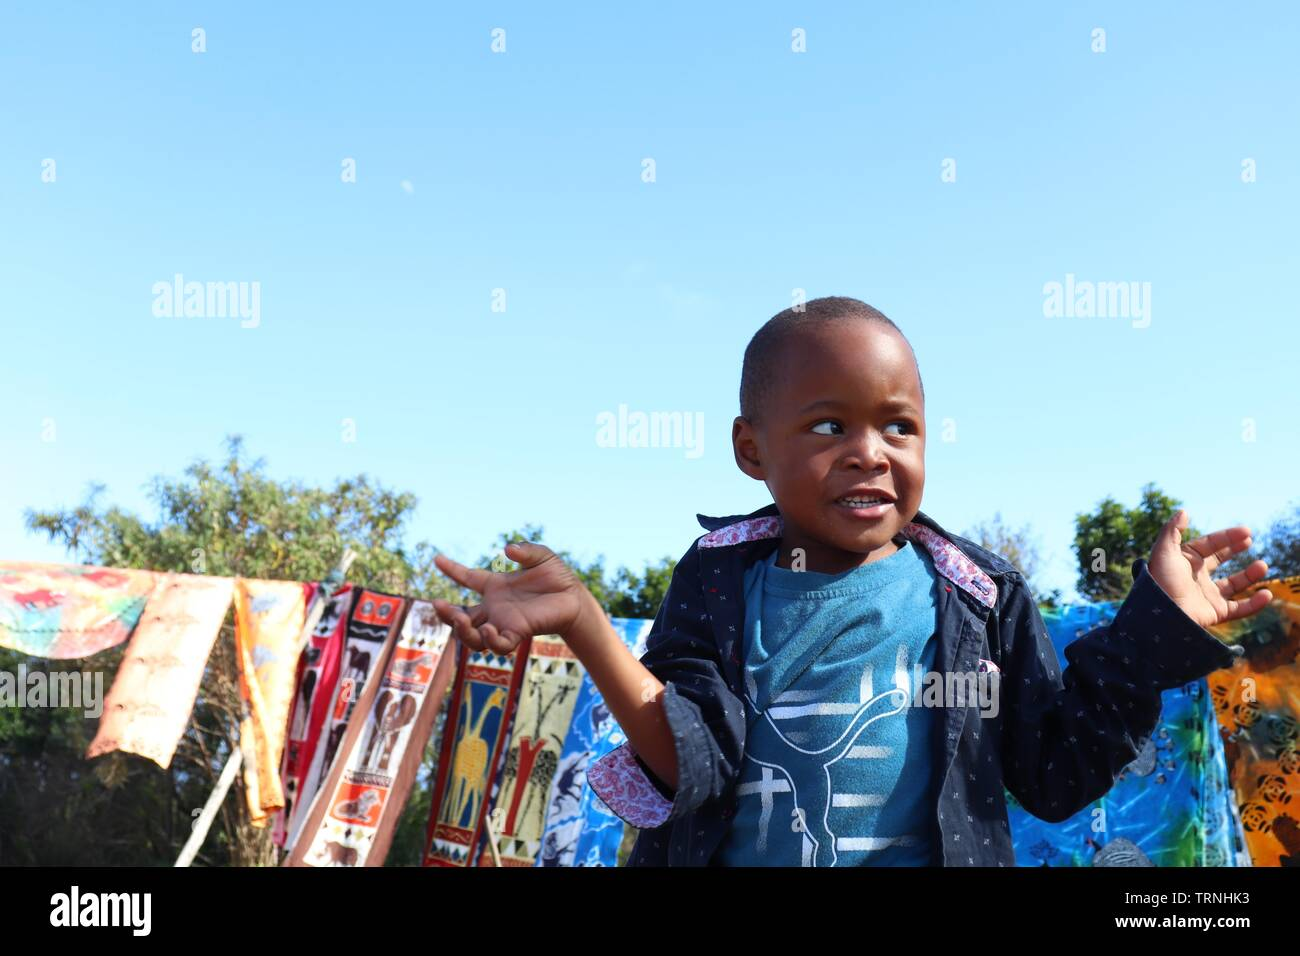 A little boy is playing while his parents sell souvenirs somewhere in South Africa - Stock Image